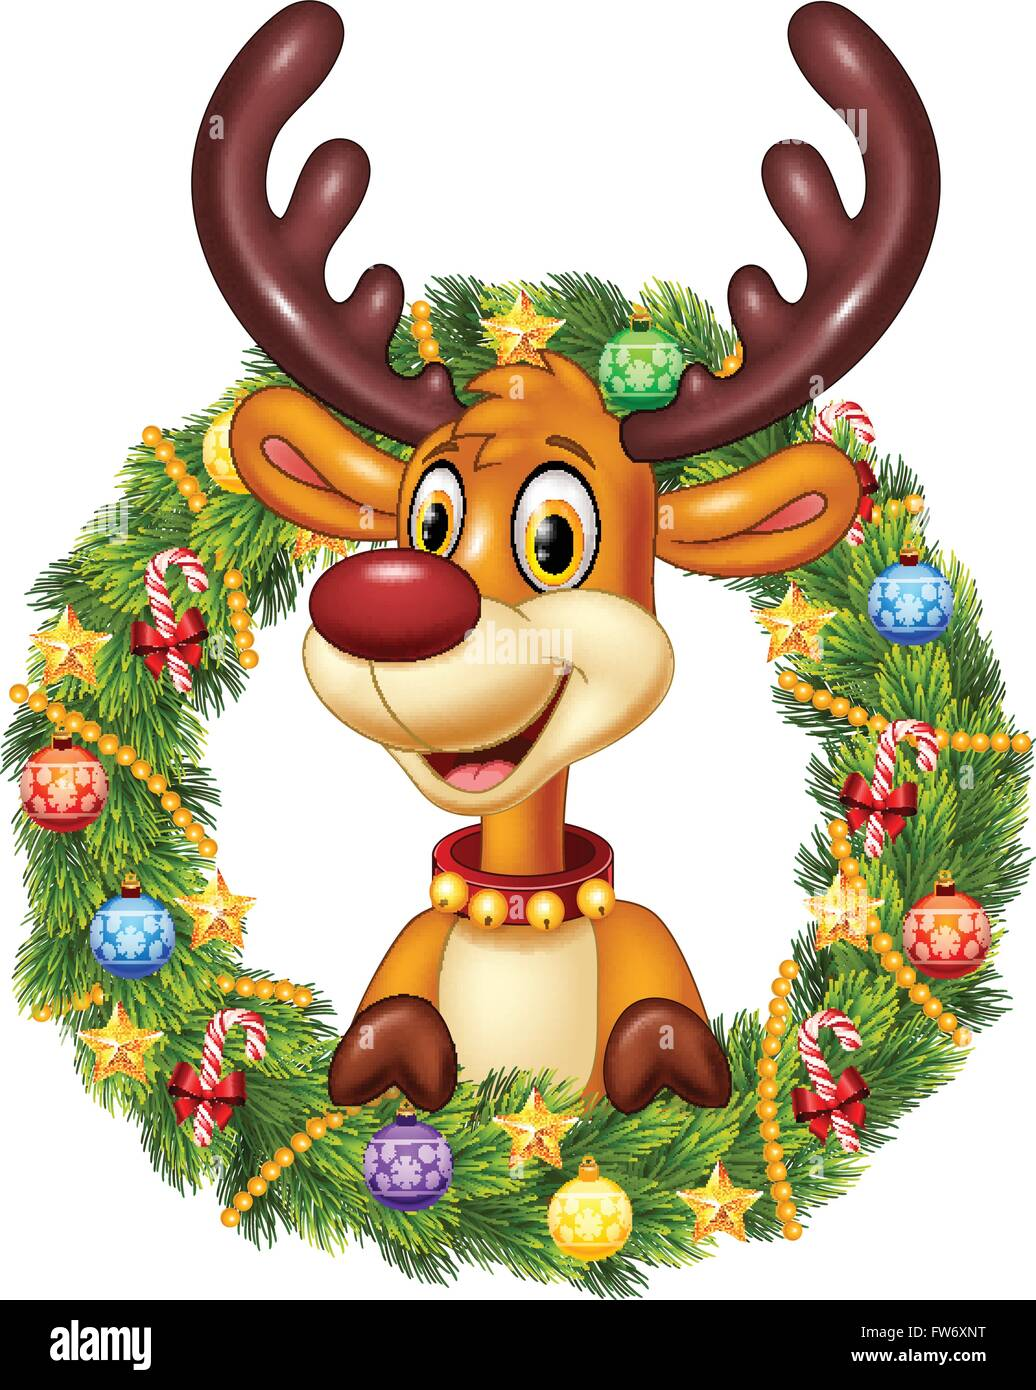 Cartoon Funny Deer Holding Christmas Wreath With Ribbons